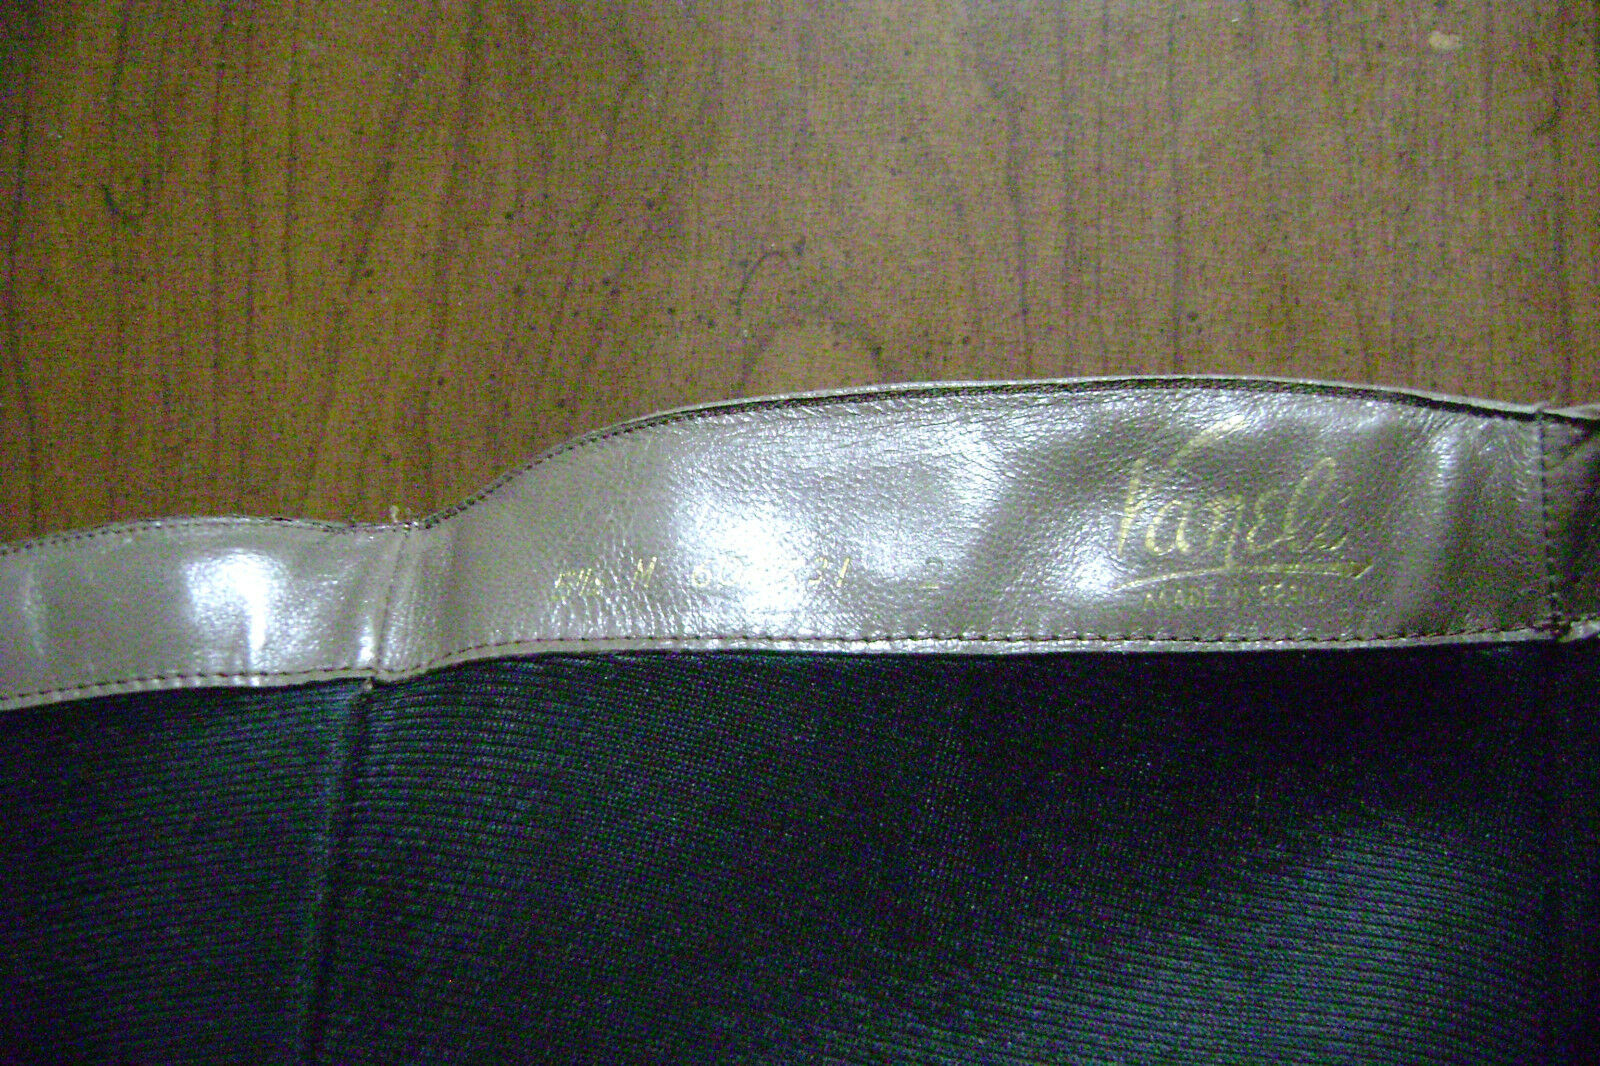 VANELI TAUPE CALF SKIN LEATHER KNEE HIGH HIGH HIGH BOOTS, NEW IN BOX, SIZE 5 1 2 M 45156e